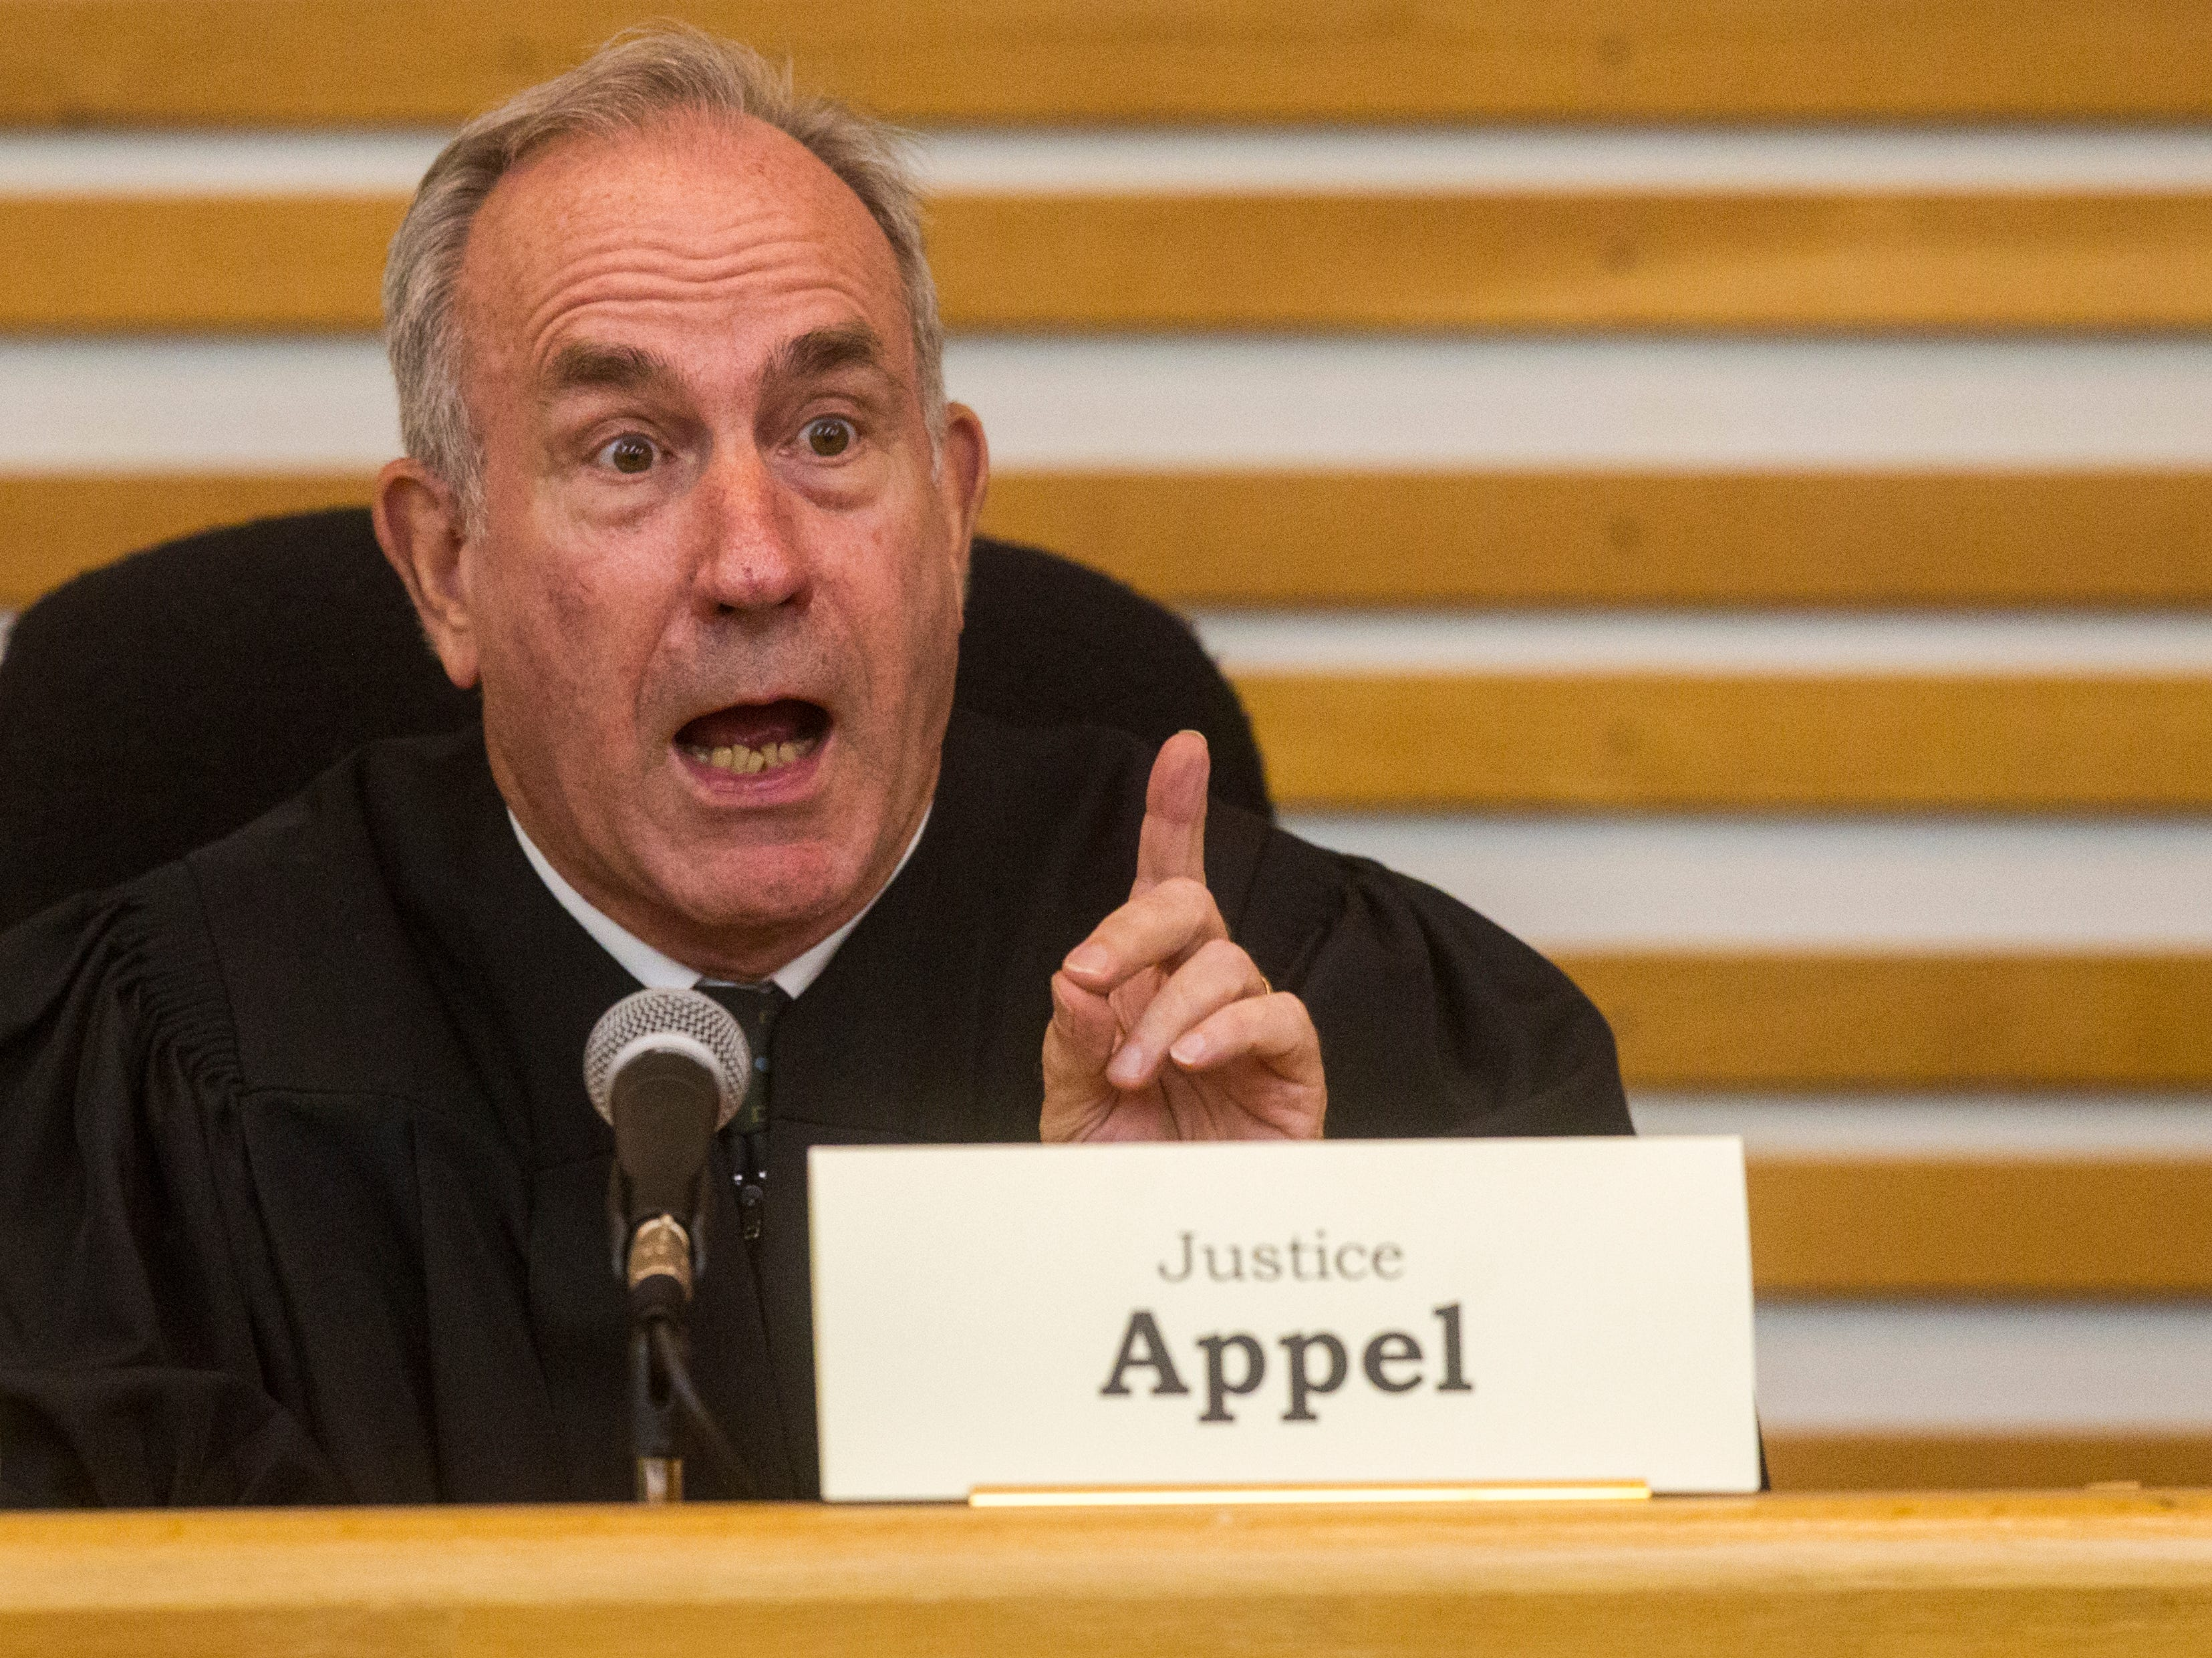 Justice Brent Appel of the Iowa Supreme Court speaks while oral arguments are presented on Friday, Sept. 7, 2018, at Levitt Auditorium inside the Boyd Law Building on the University of Iowa campus in Iowa City.